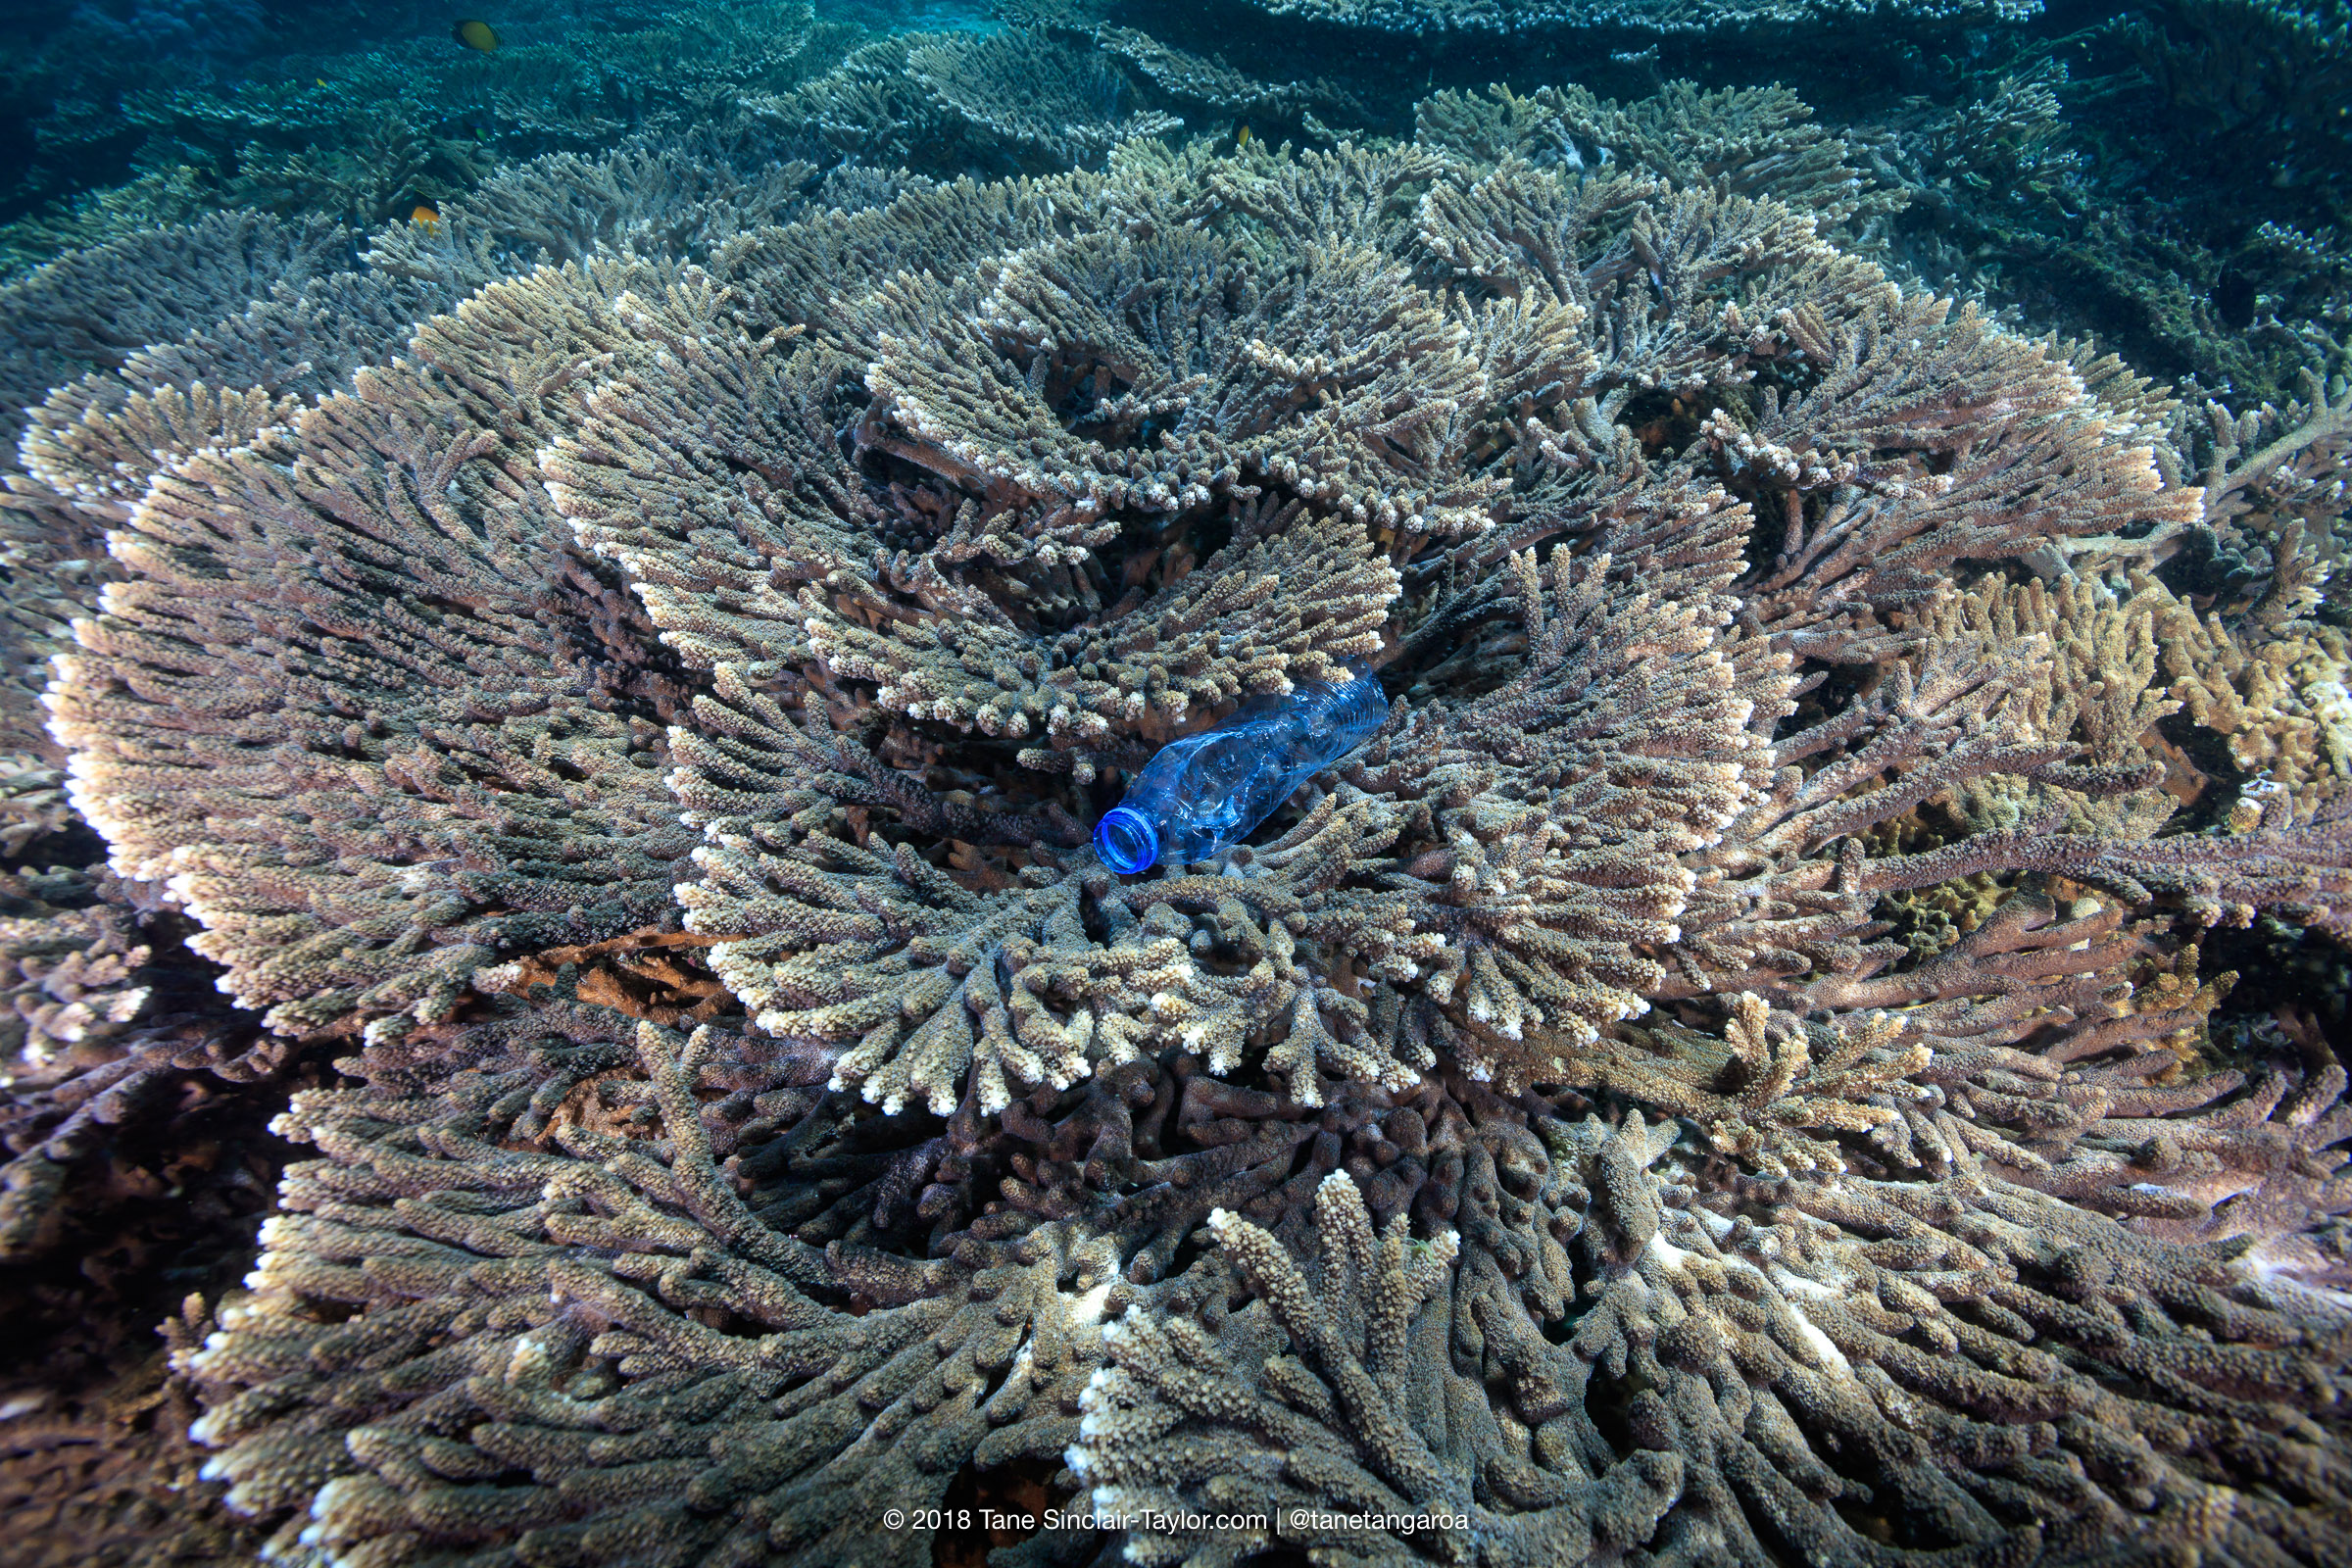 Plastic waste places coral reef liable to illness